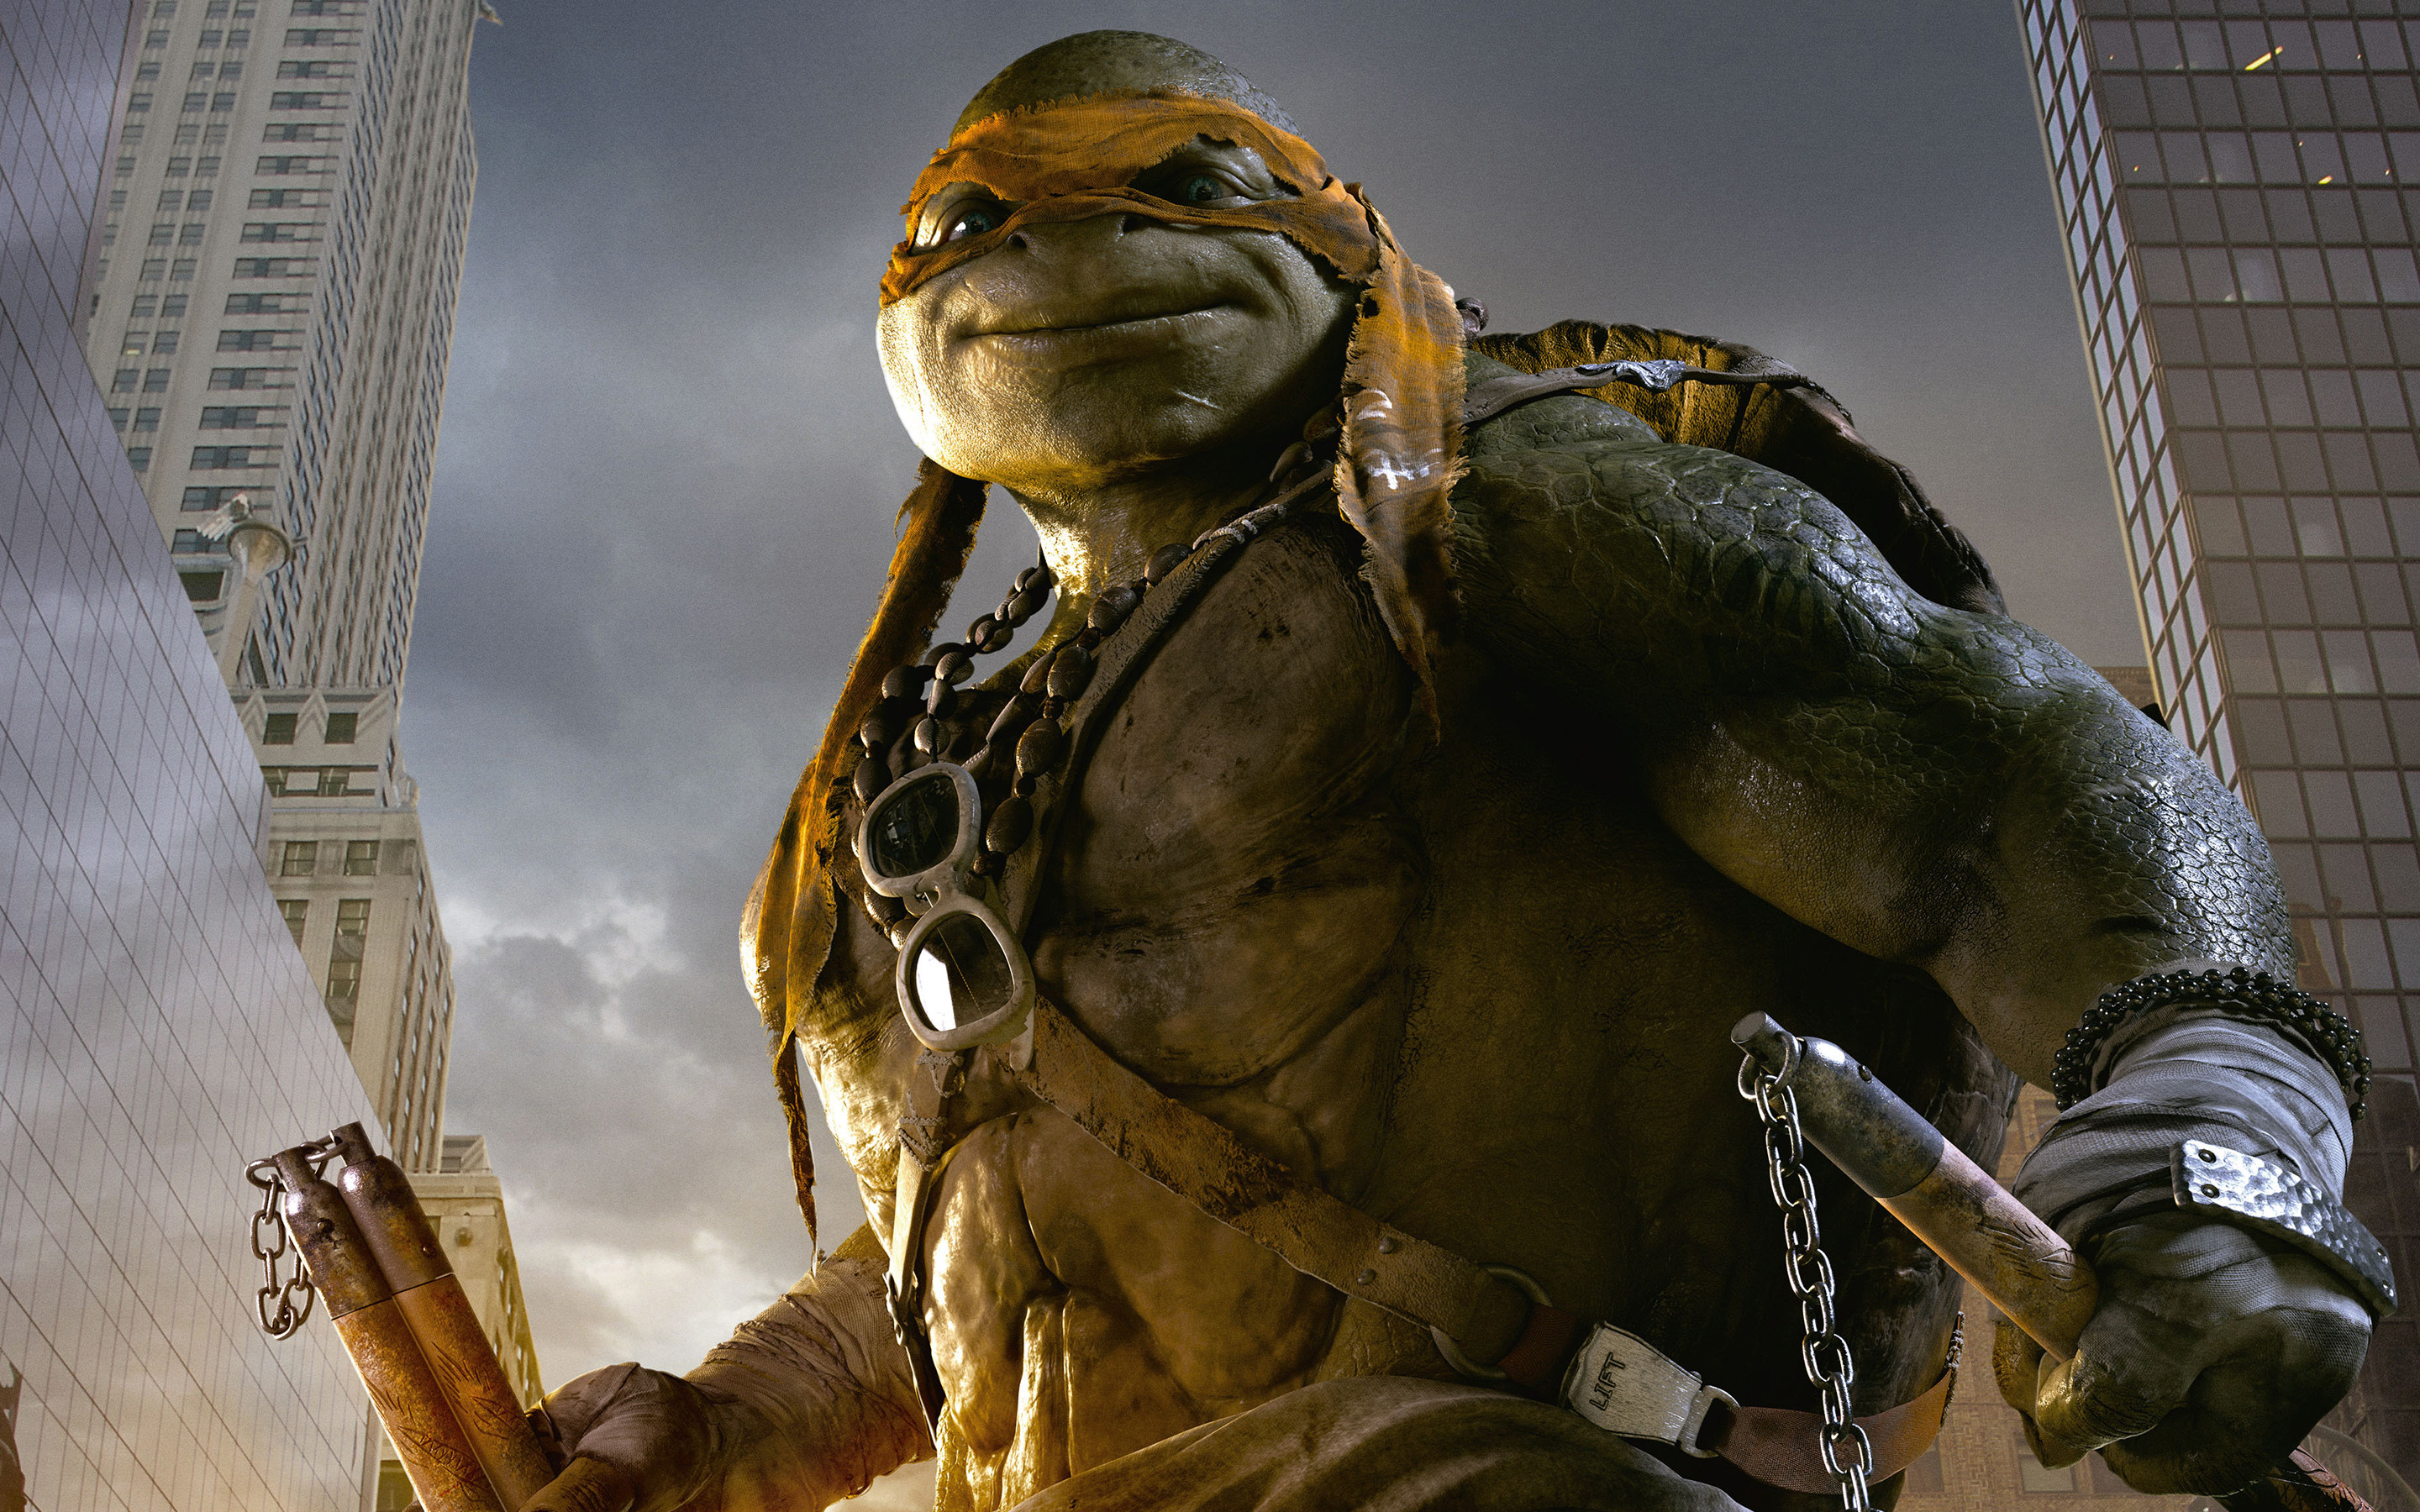 2880x1800 Mikey in Teenage Mutant Ninja Turtles